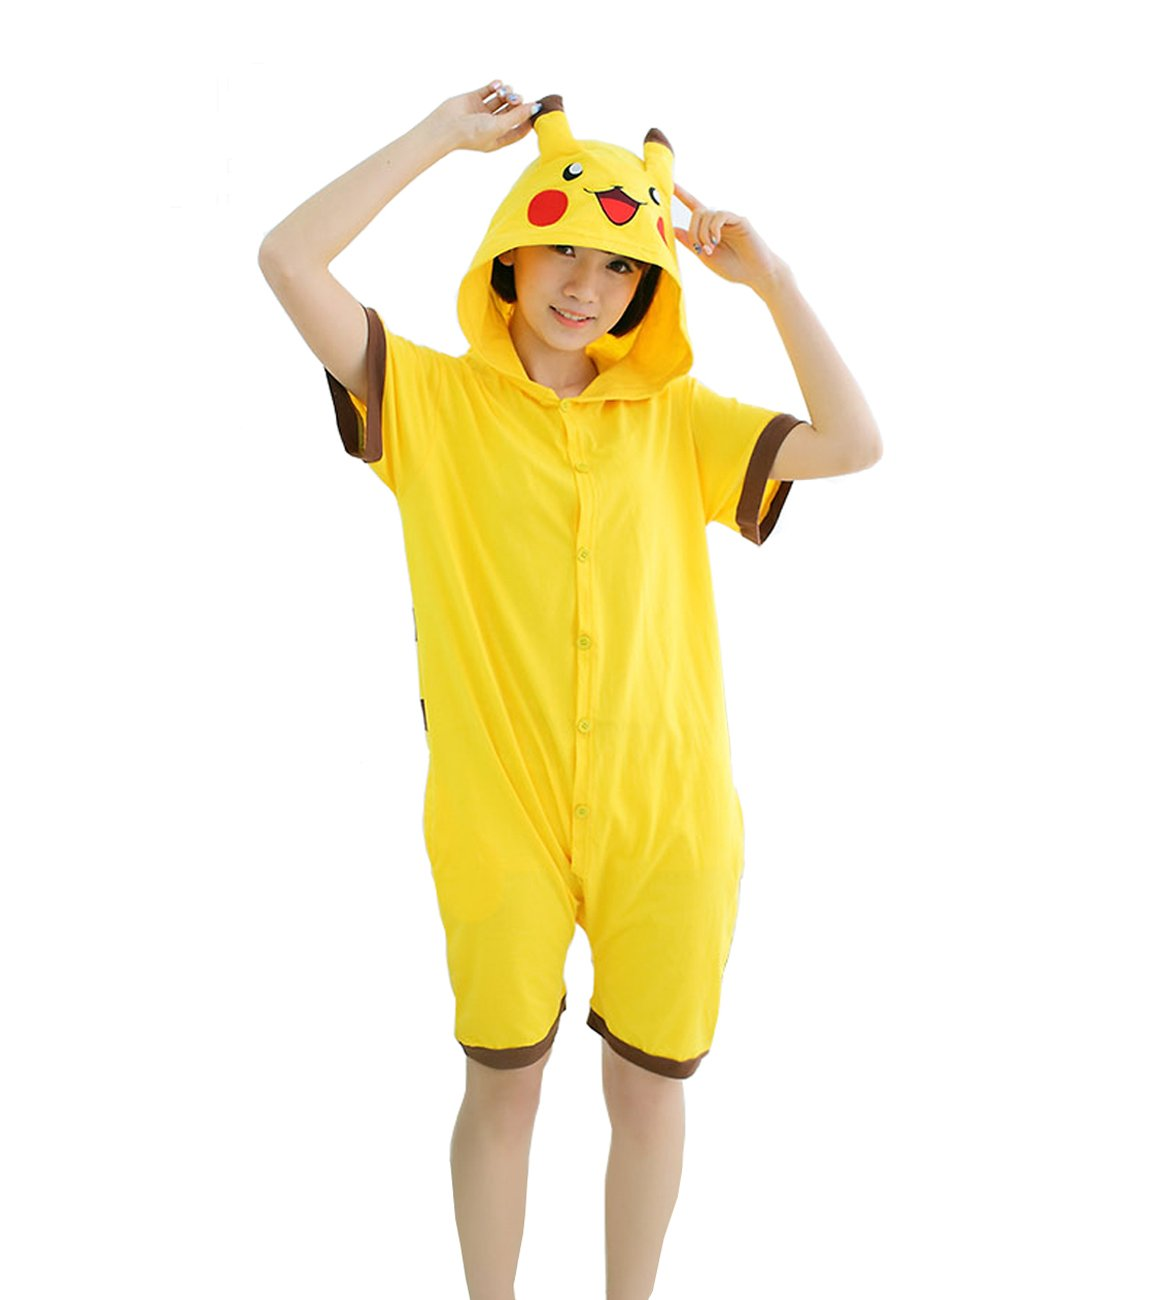 Yimidear Unisex Pikachu Costume Summer Cute Cartoon Cotton Pajamas Animal Onesie (M)